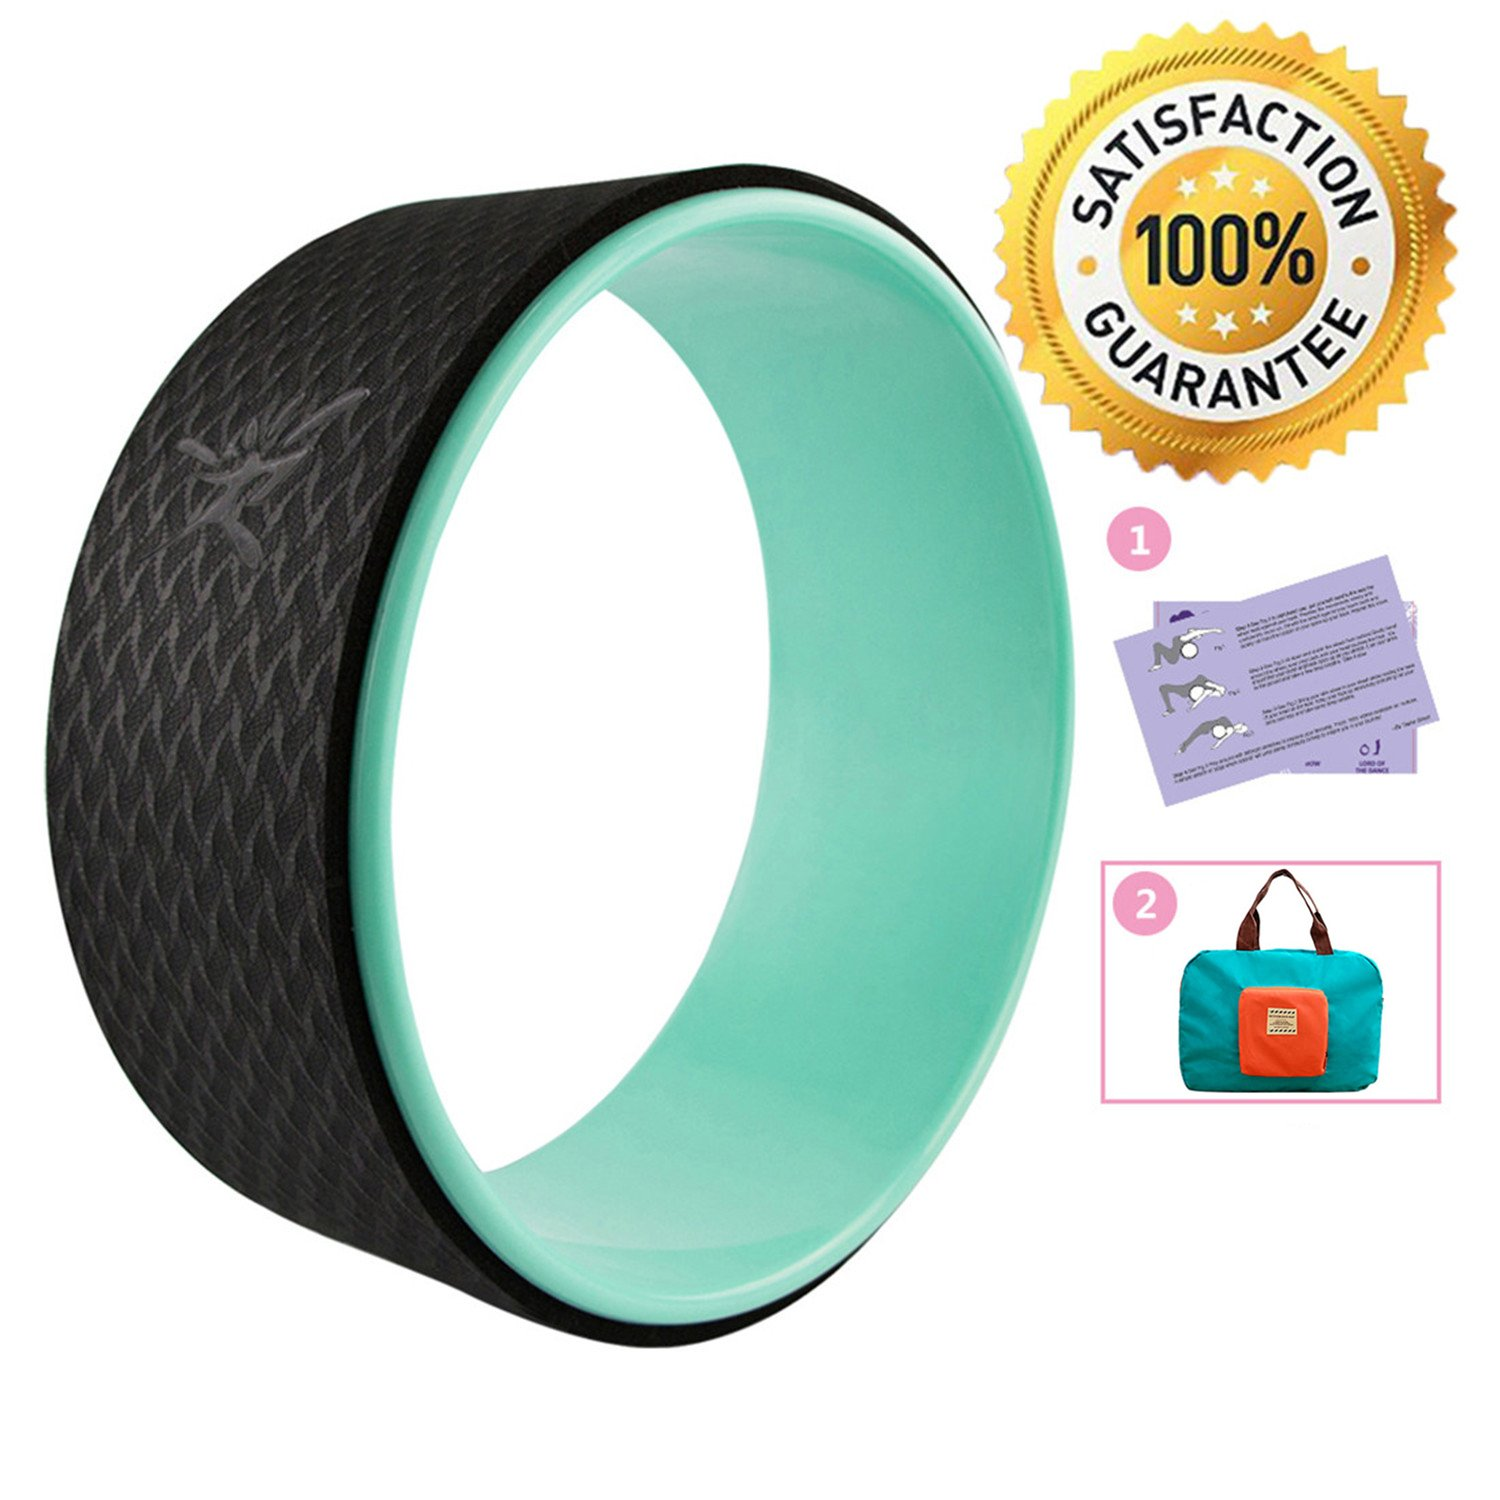 seeknfind 13 x 5 Inch Basic Yoga Wheel - Strongest & Comfortable Dharma Yoga Prop Wheel for All Yoga Poses Perfect Accessory for Stretching Increasing Flexibility and Improving Backbends (6)